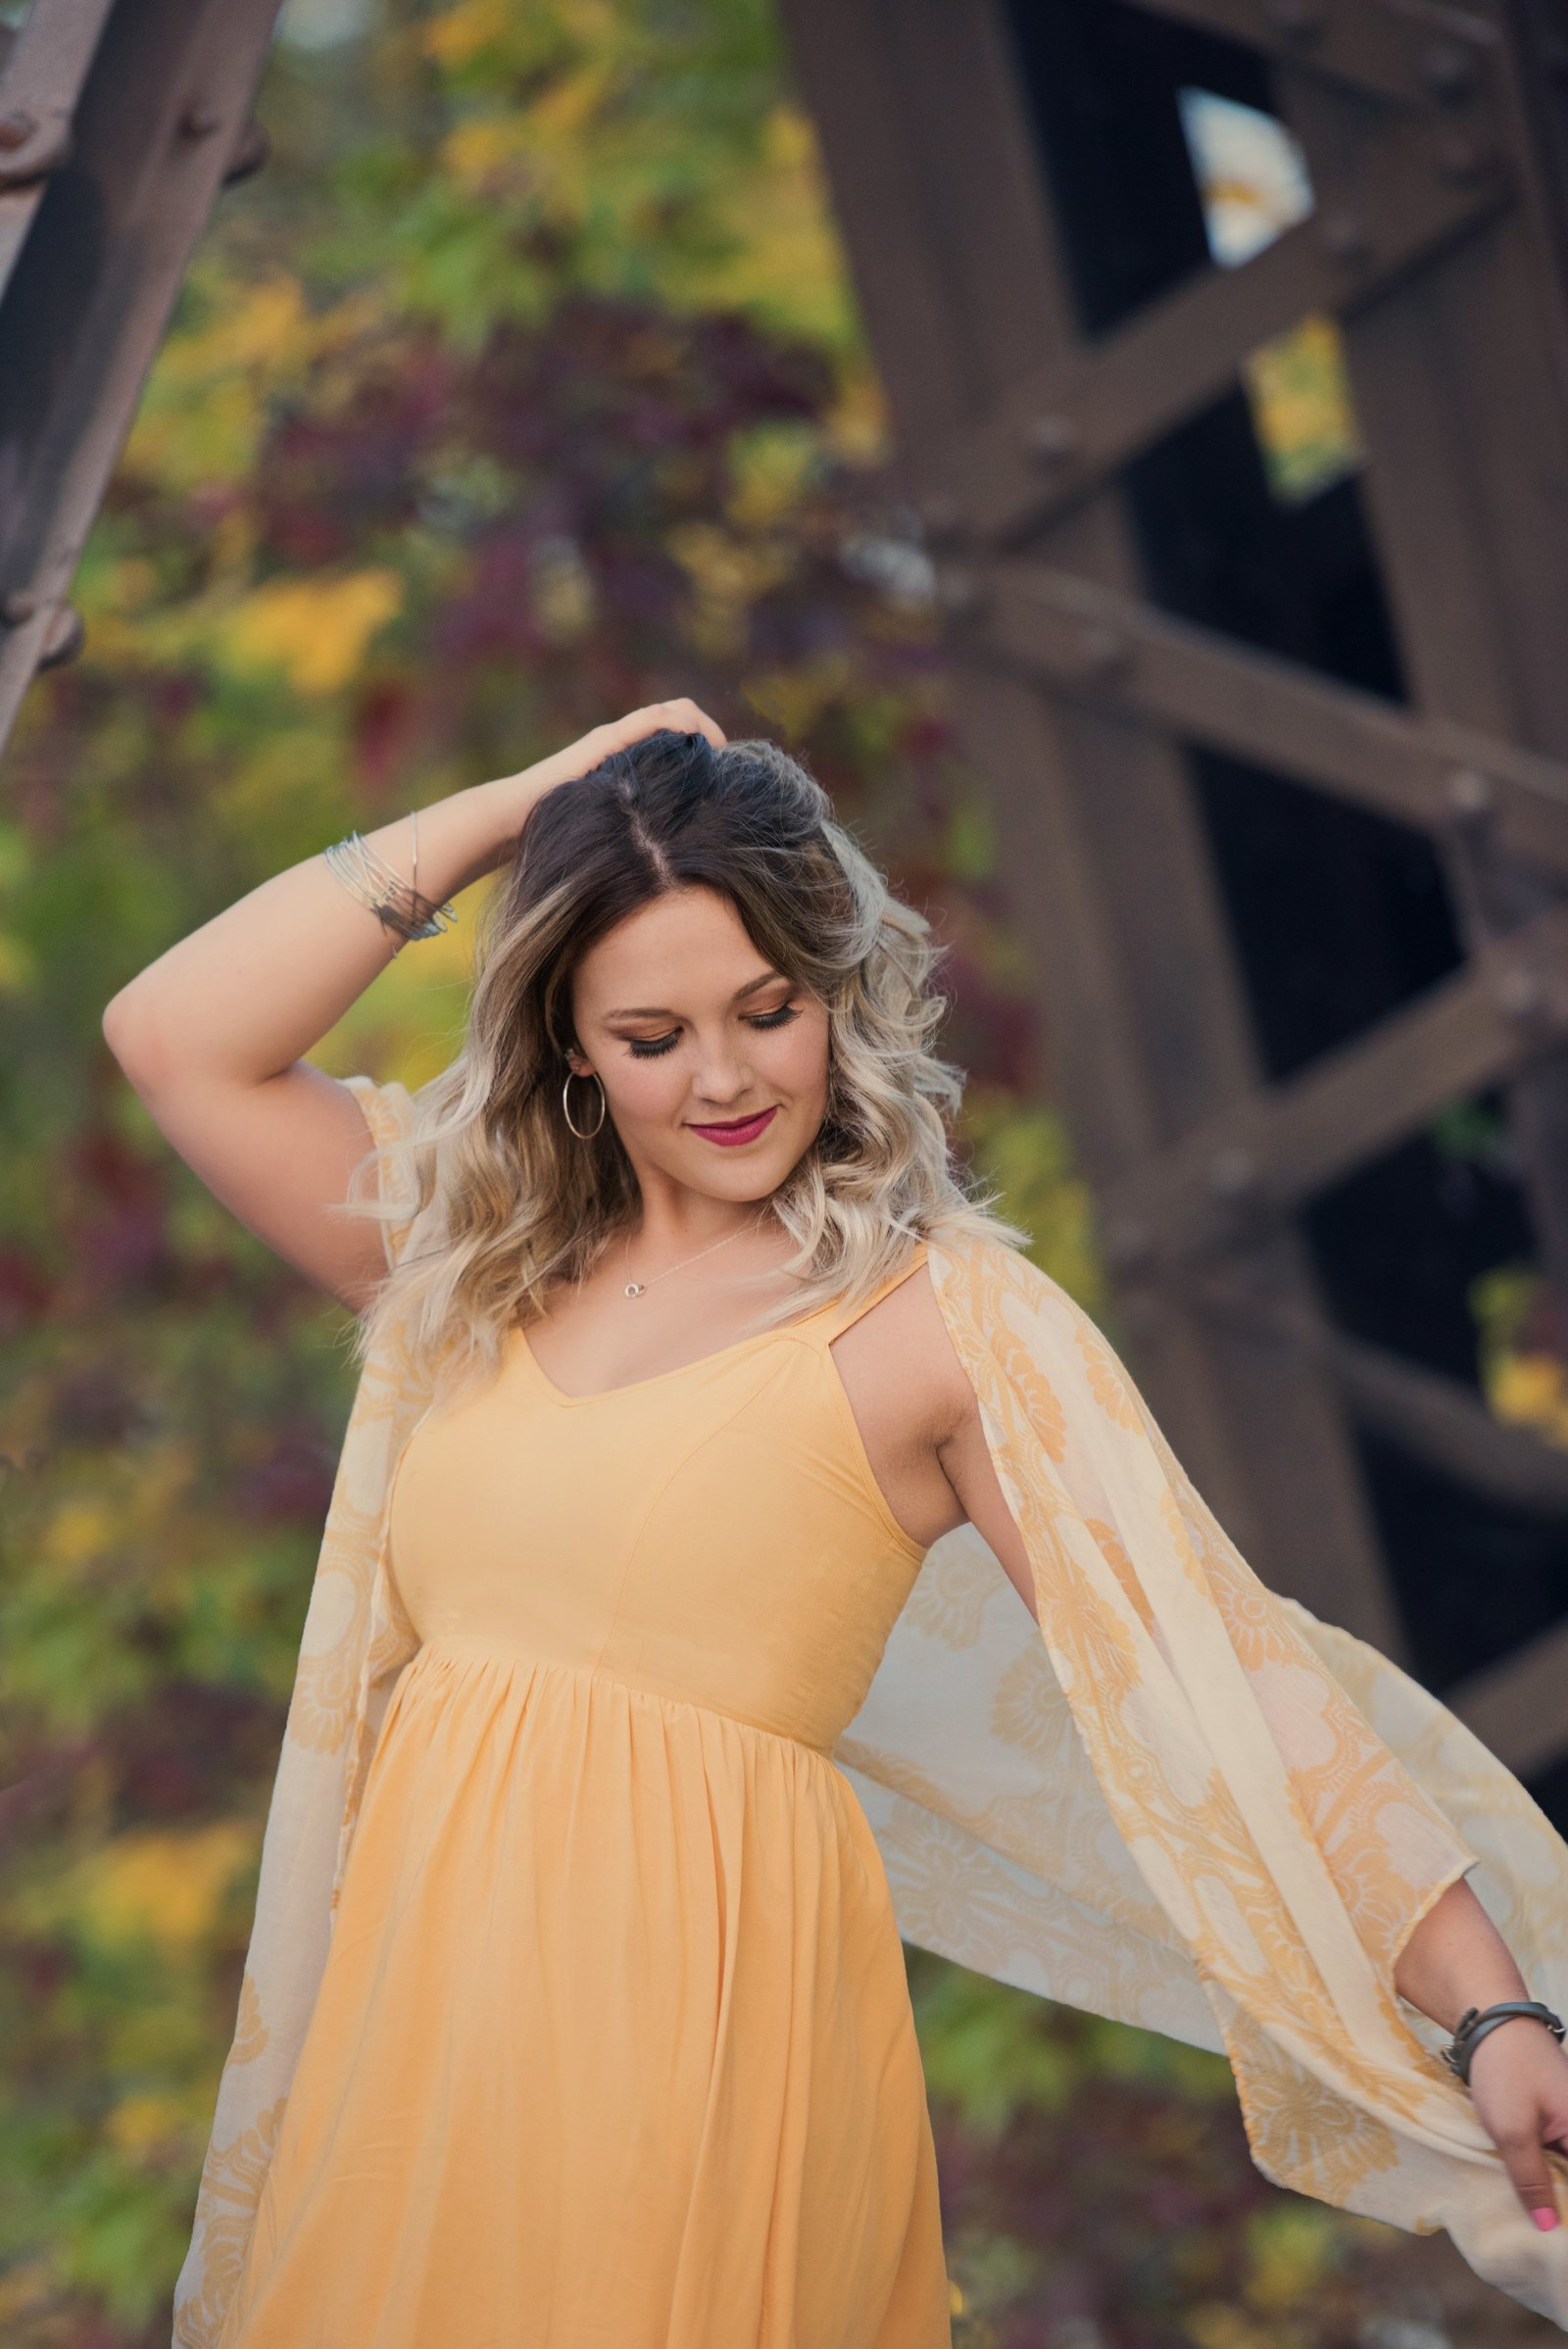 Senior picture of caucasian girl in yellow dress in autumn